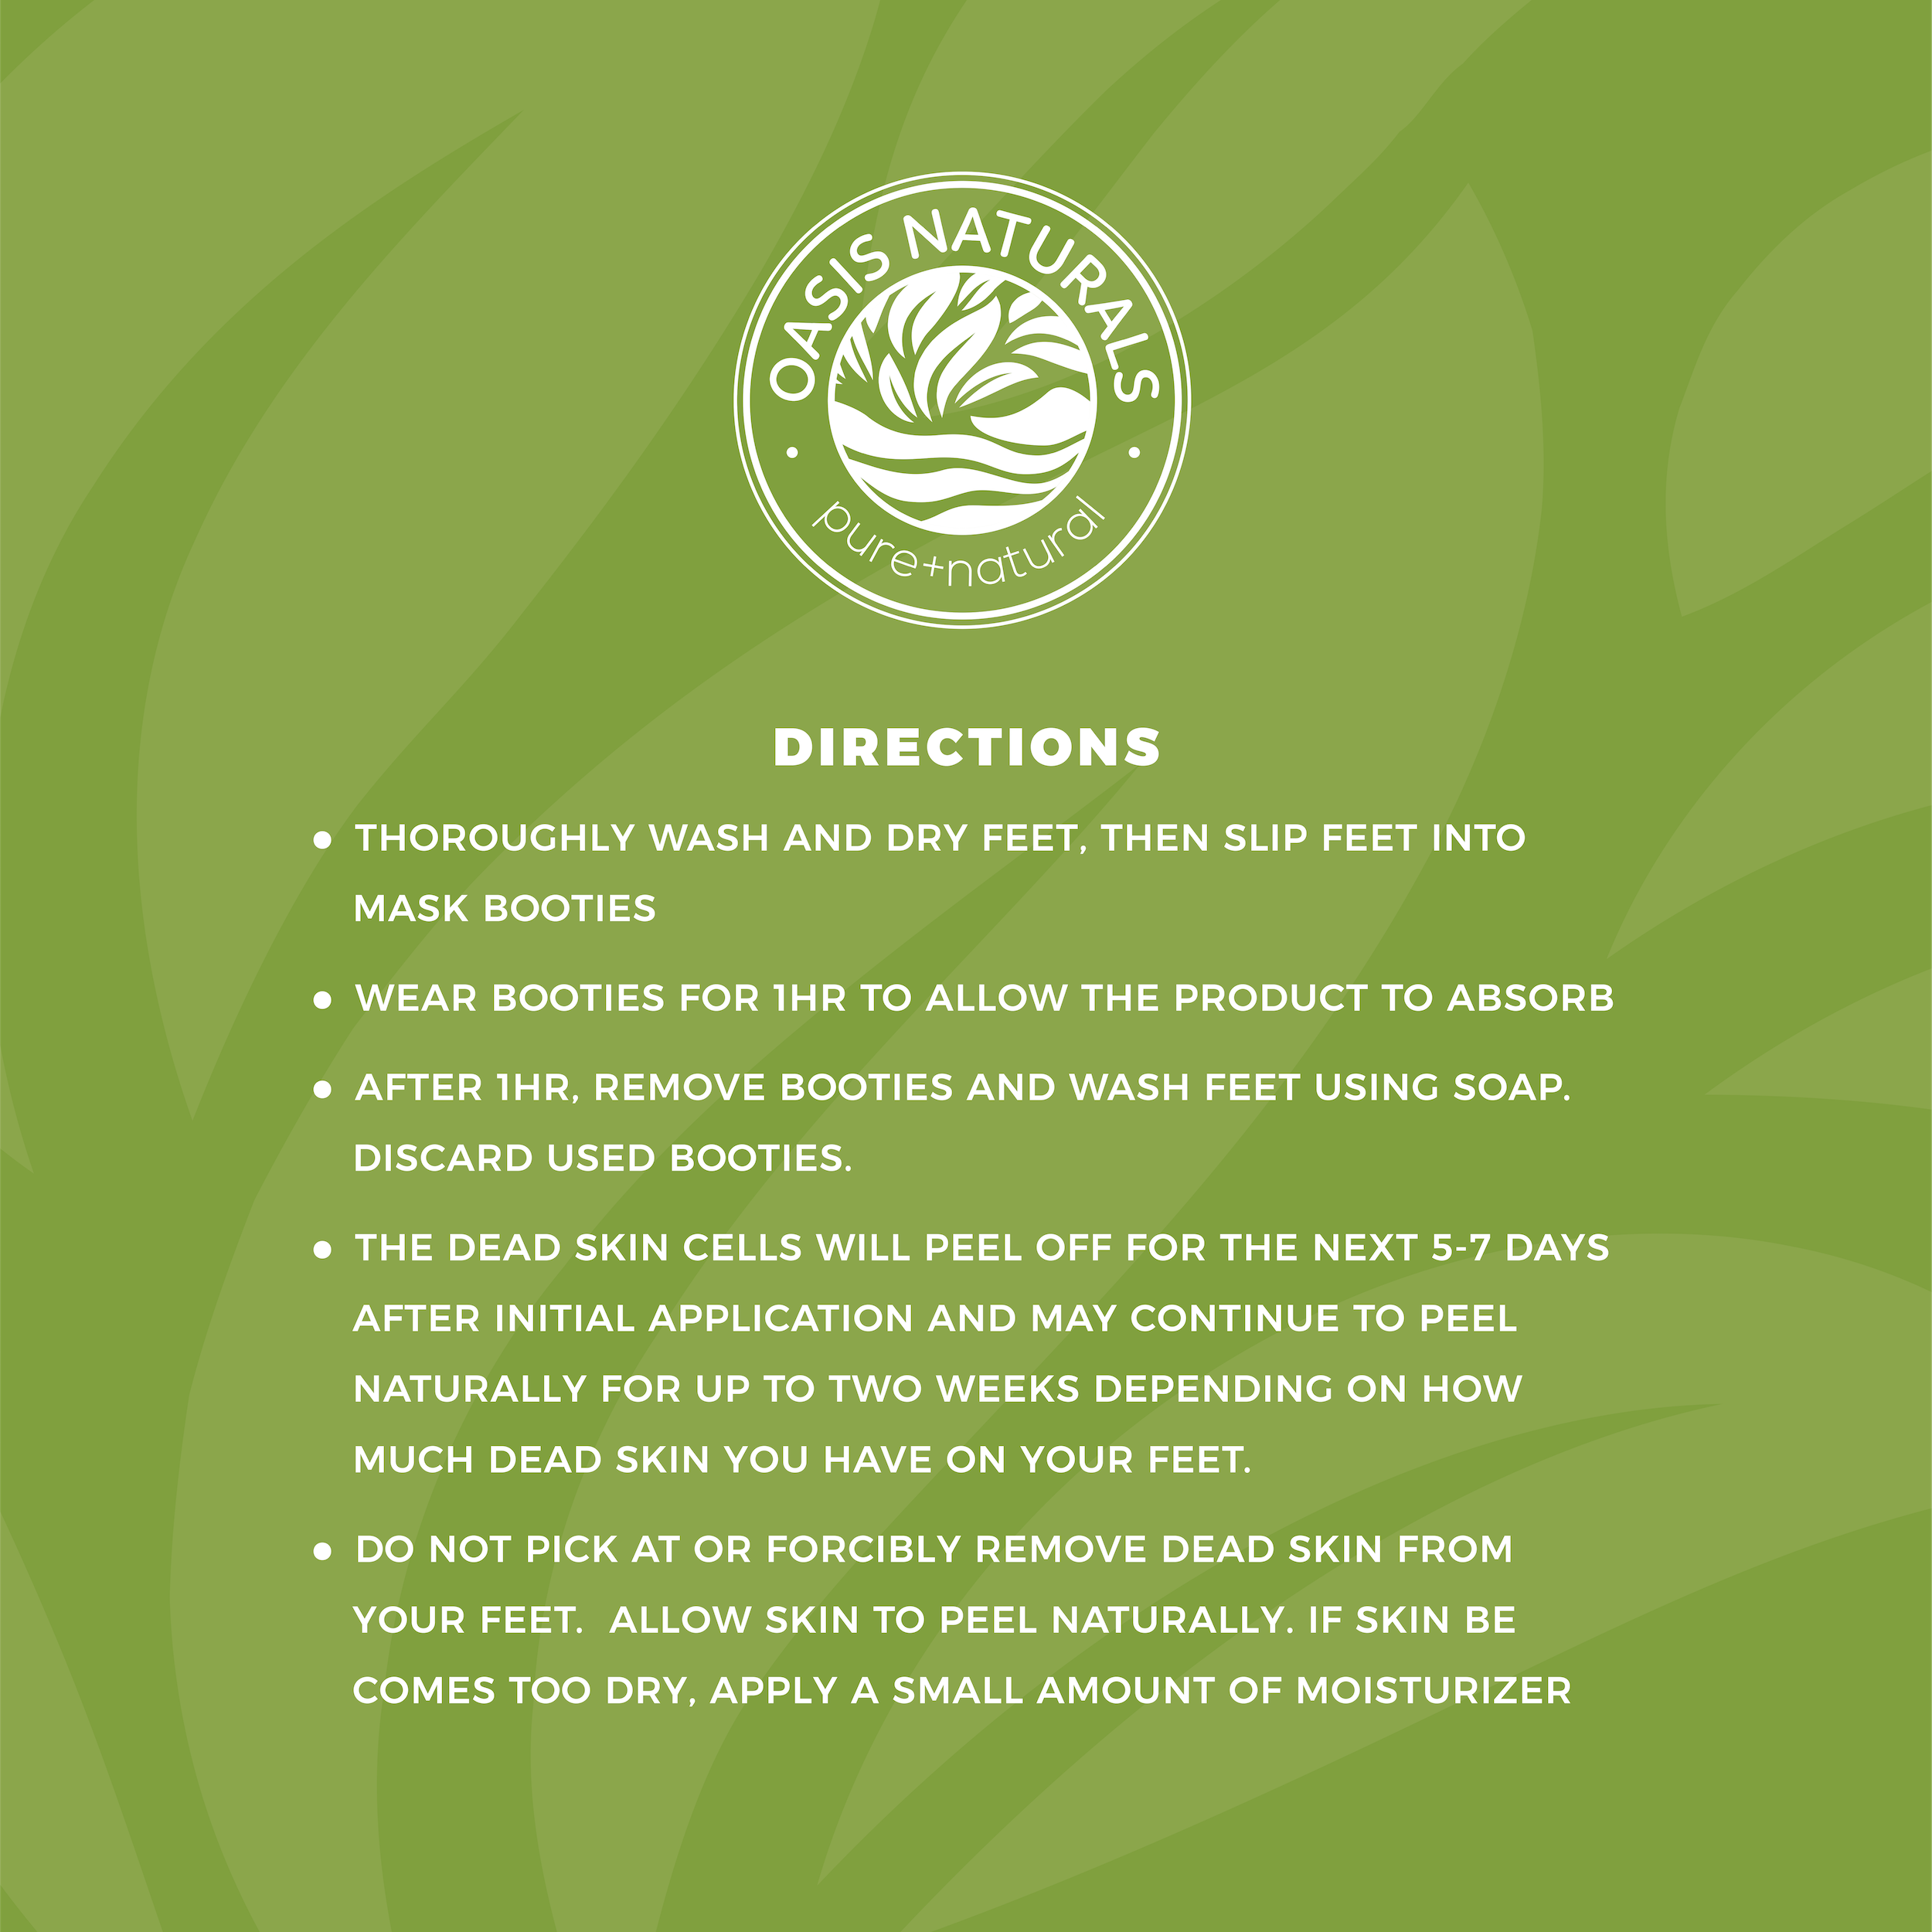 oasis naturals text directions.png